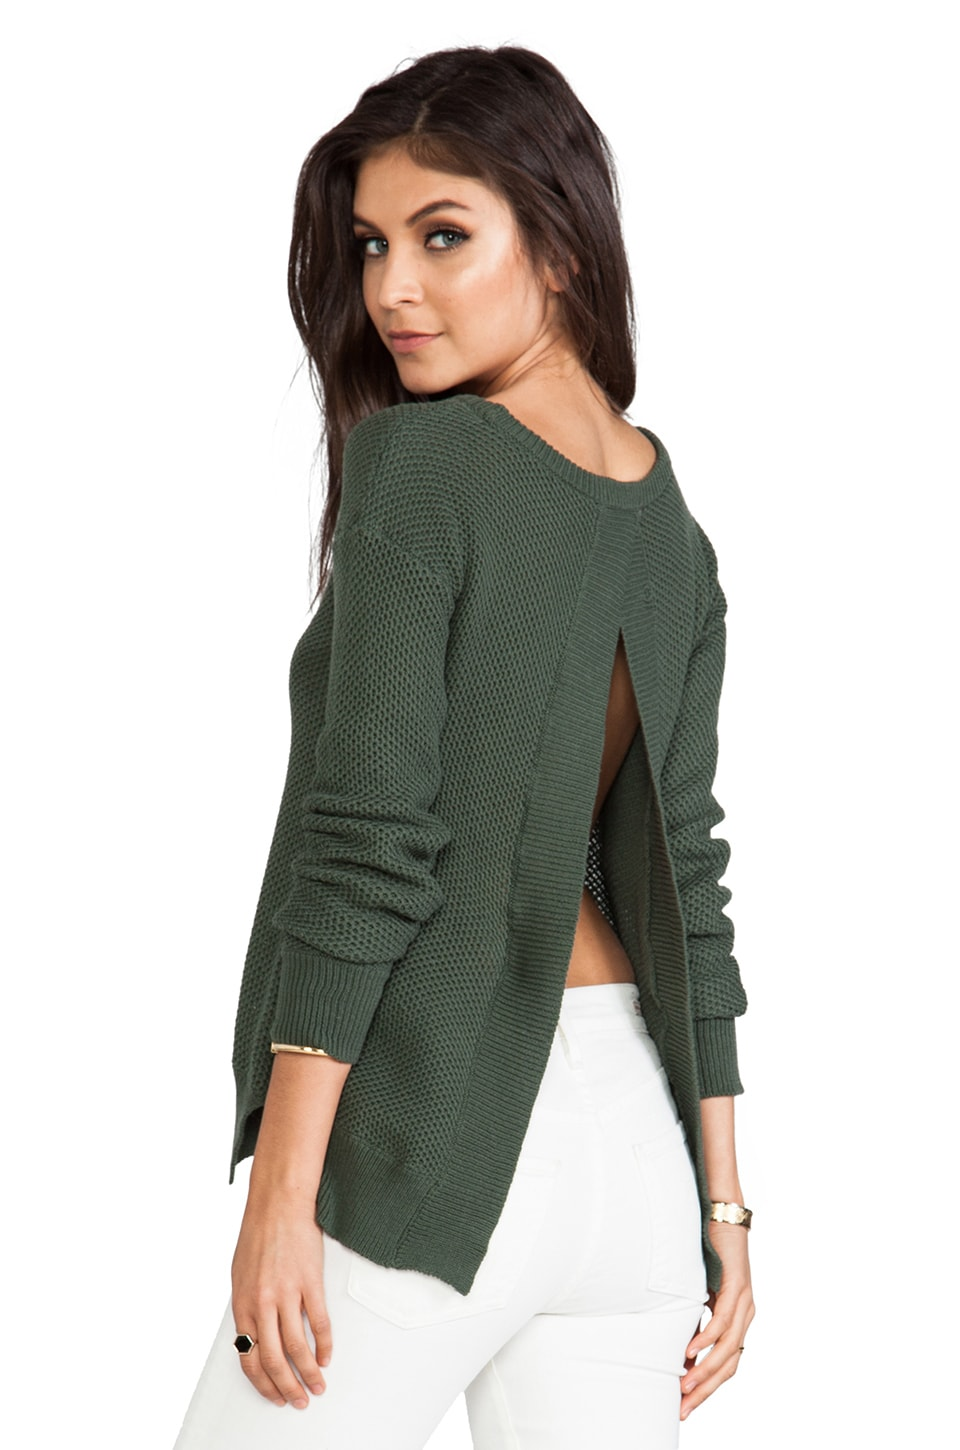 BB Dakota Kit Open Back Sweater in Army Green